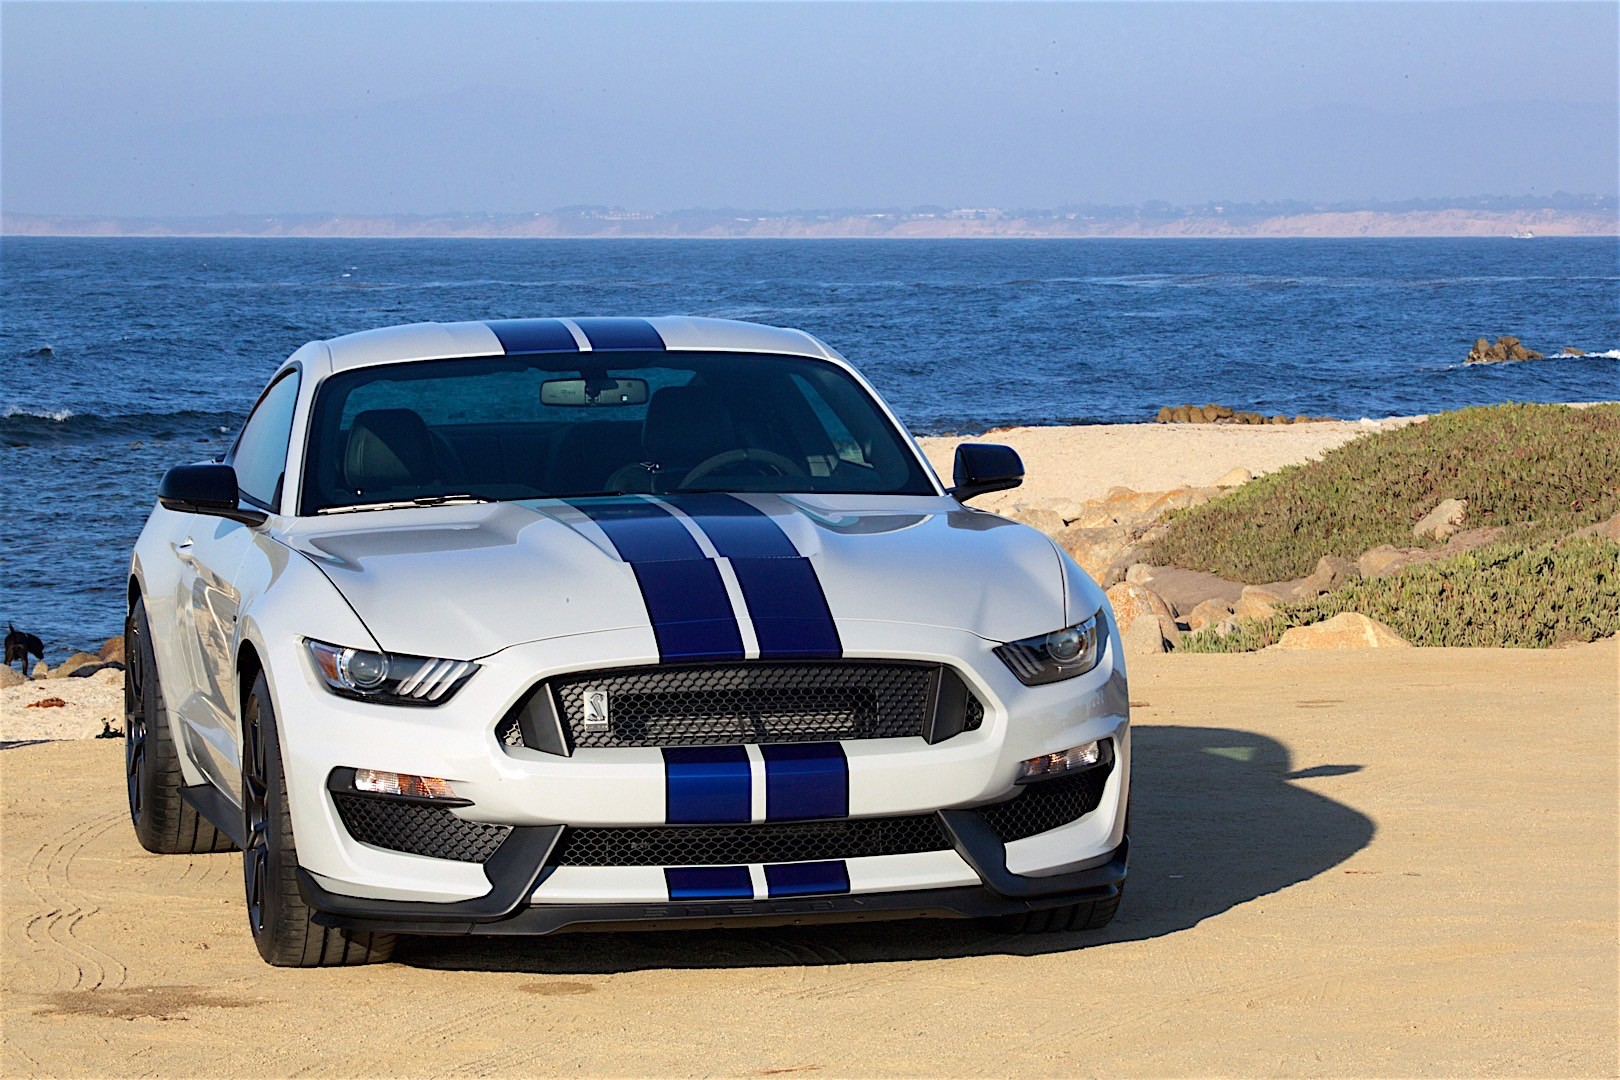 2017 Ford Shelby Gt350 Interior >> FORD Mustang Shelby GT350 specs - 2015, 2016, 2017, 2018 - autoevolution